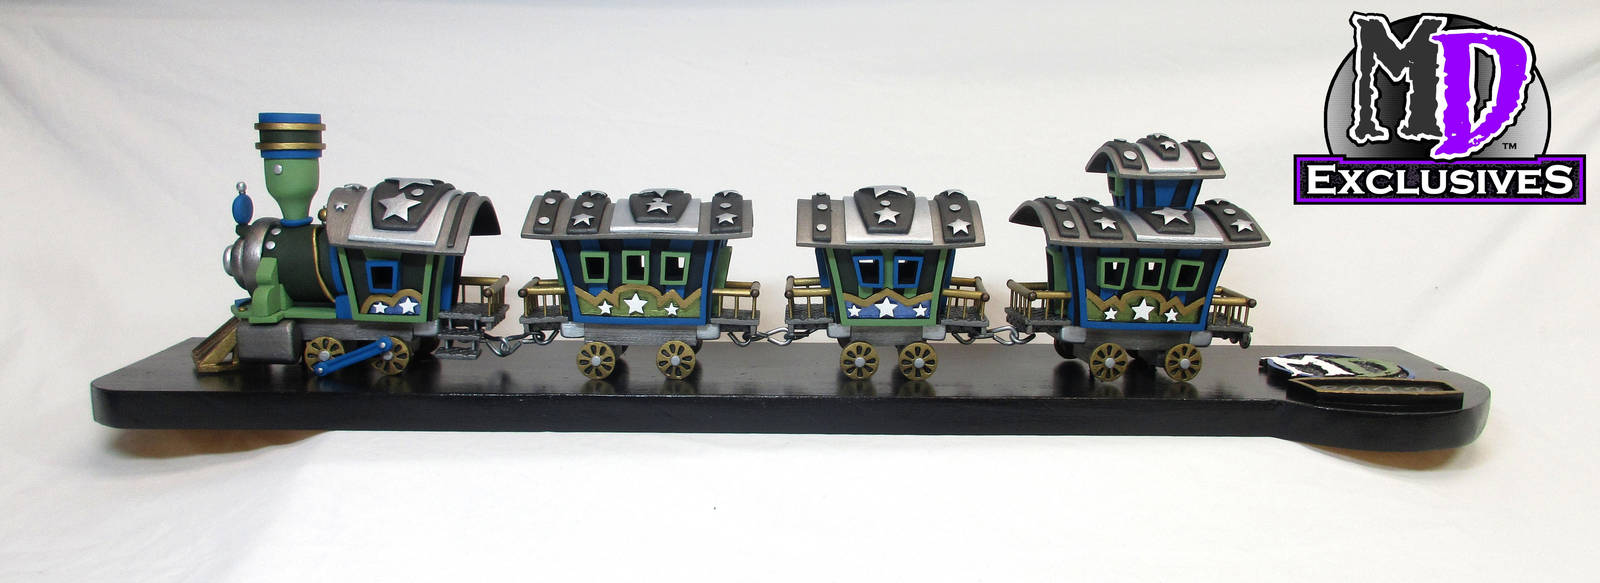 2016 MD Exclusives Blue/Green Train set by MacLeodDragons